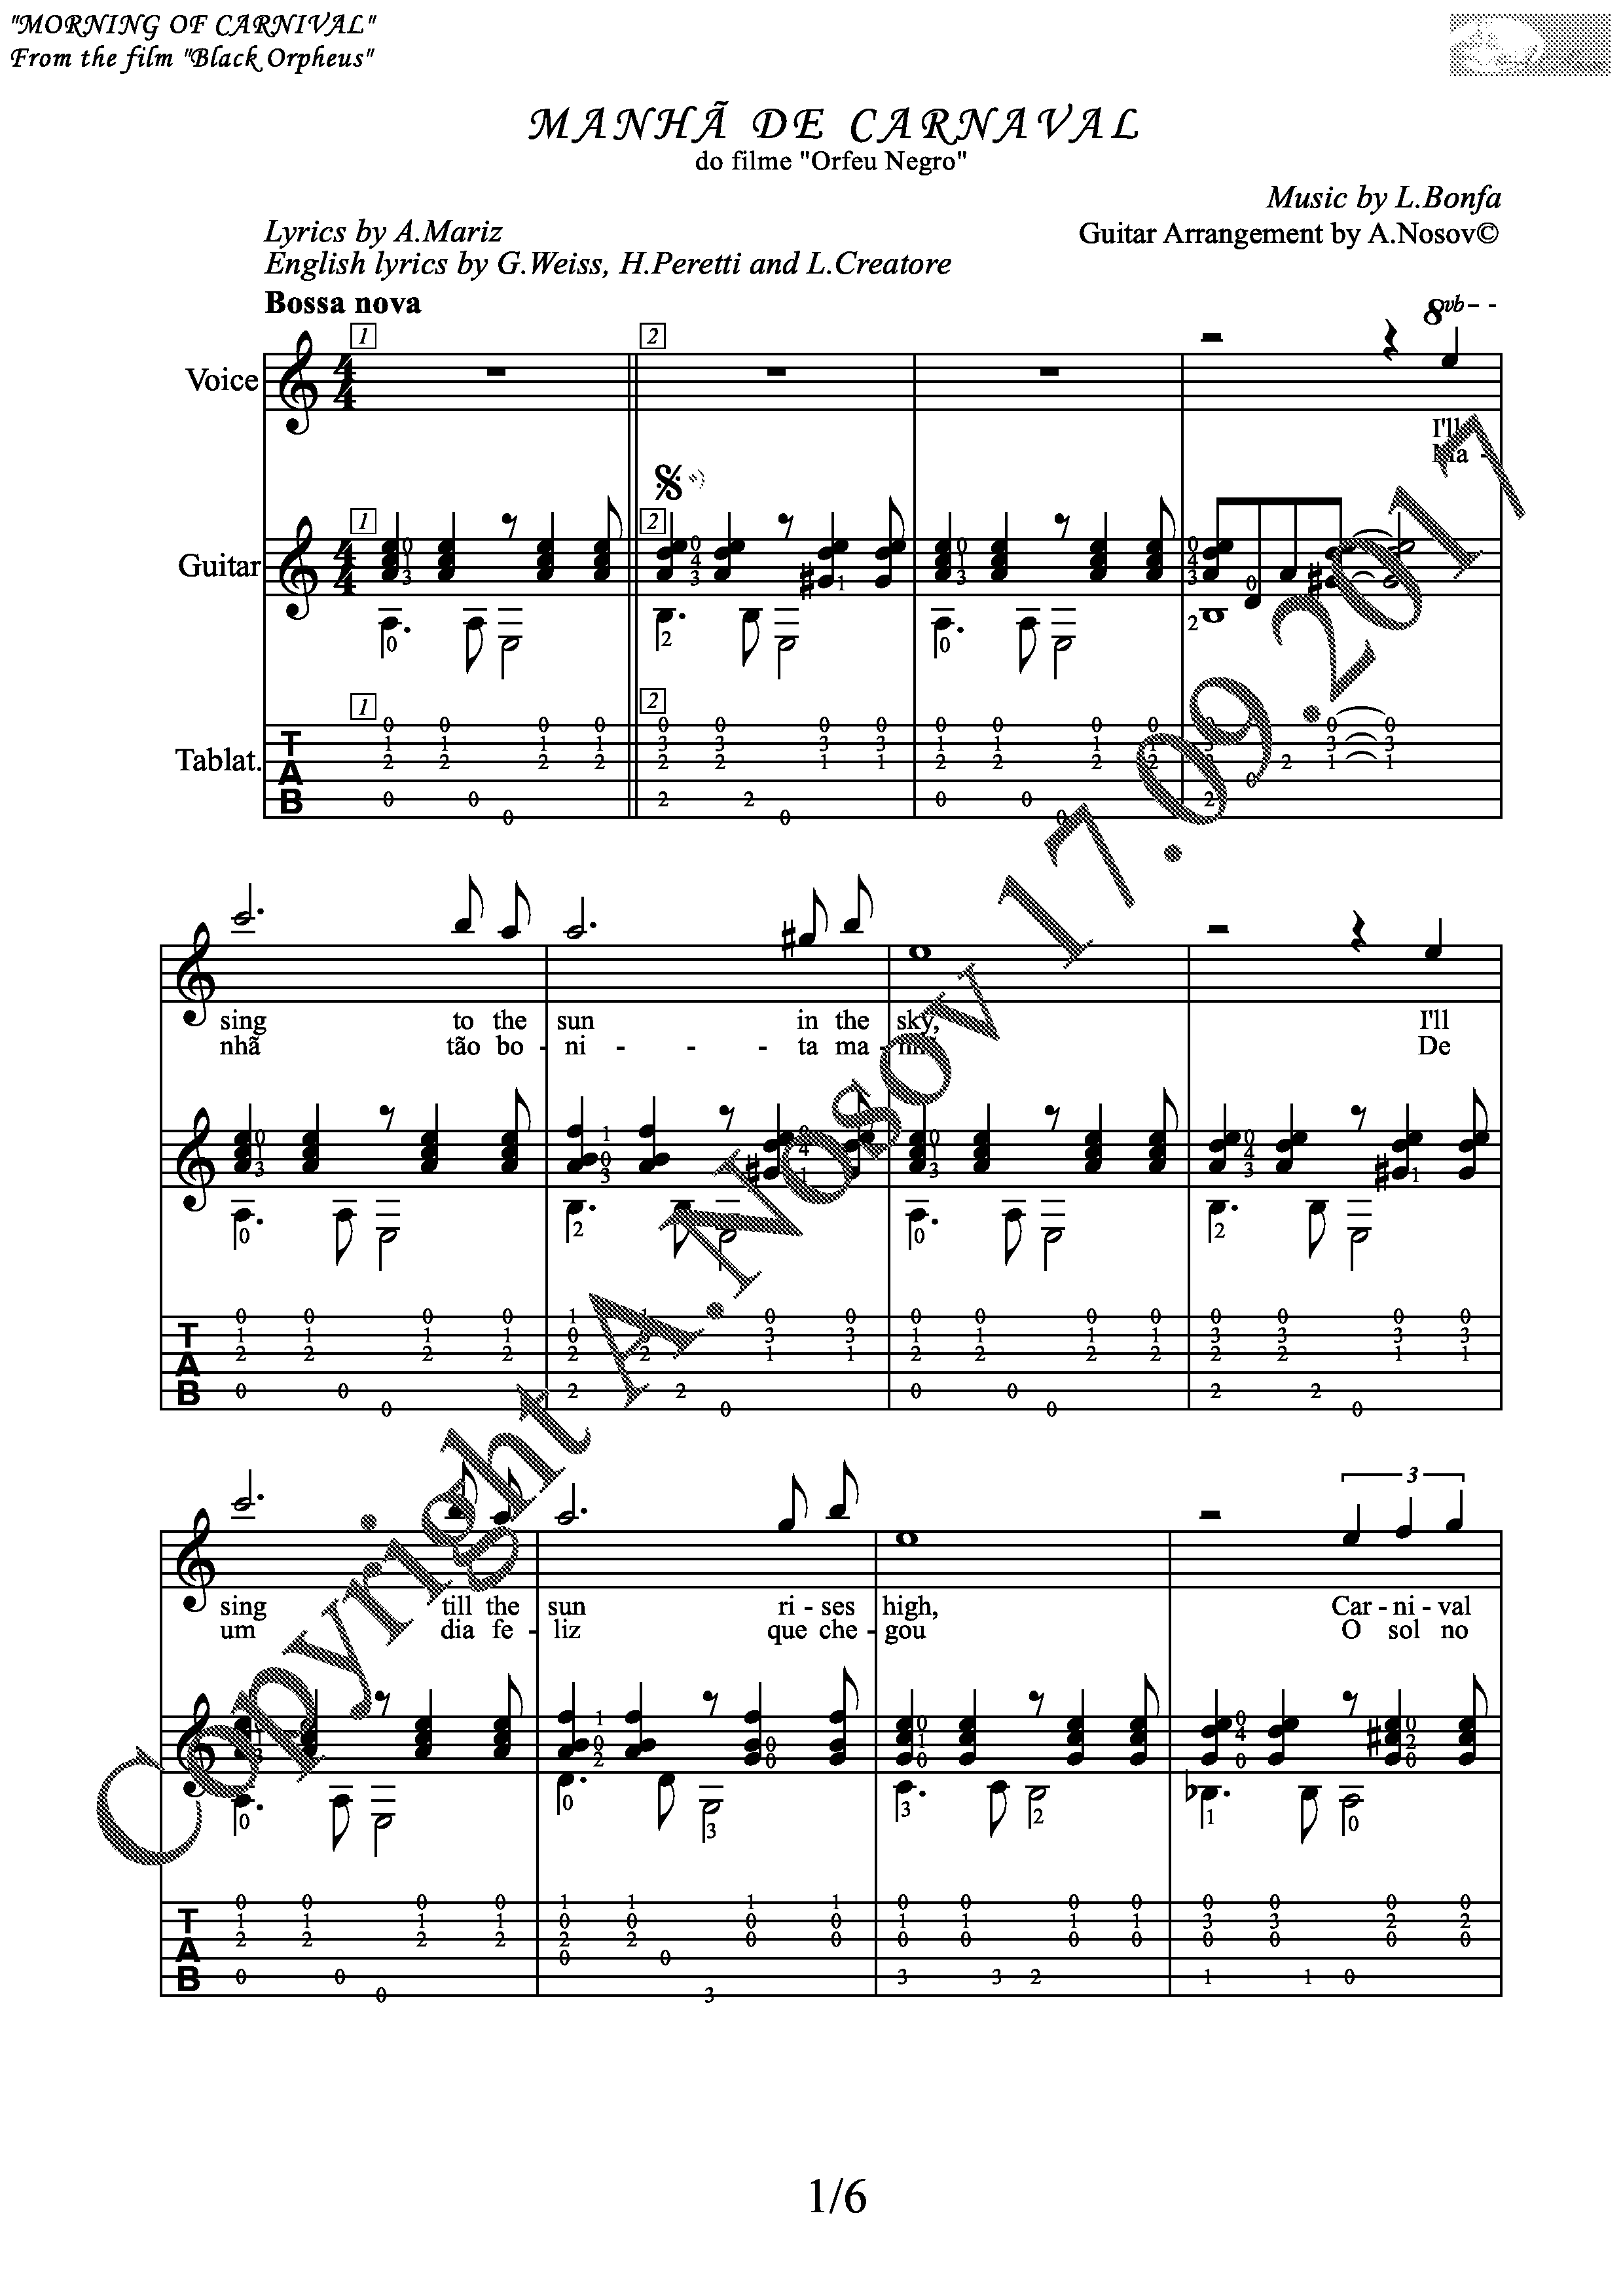 Morning of Carnival (Songs Sheet Music Guitar Tabs)